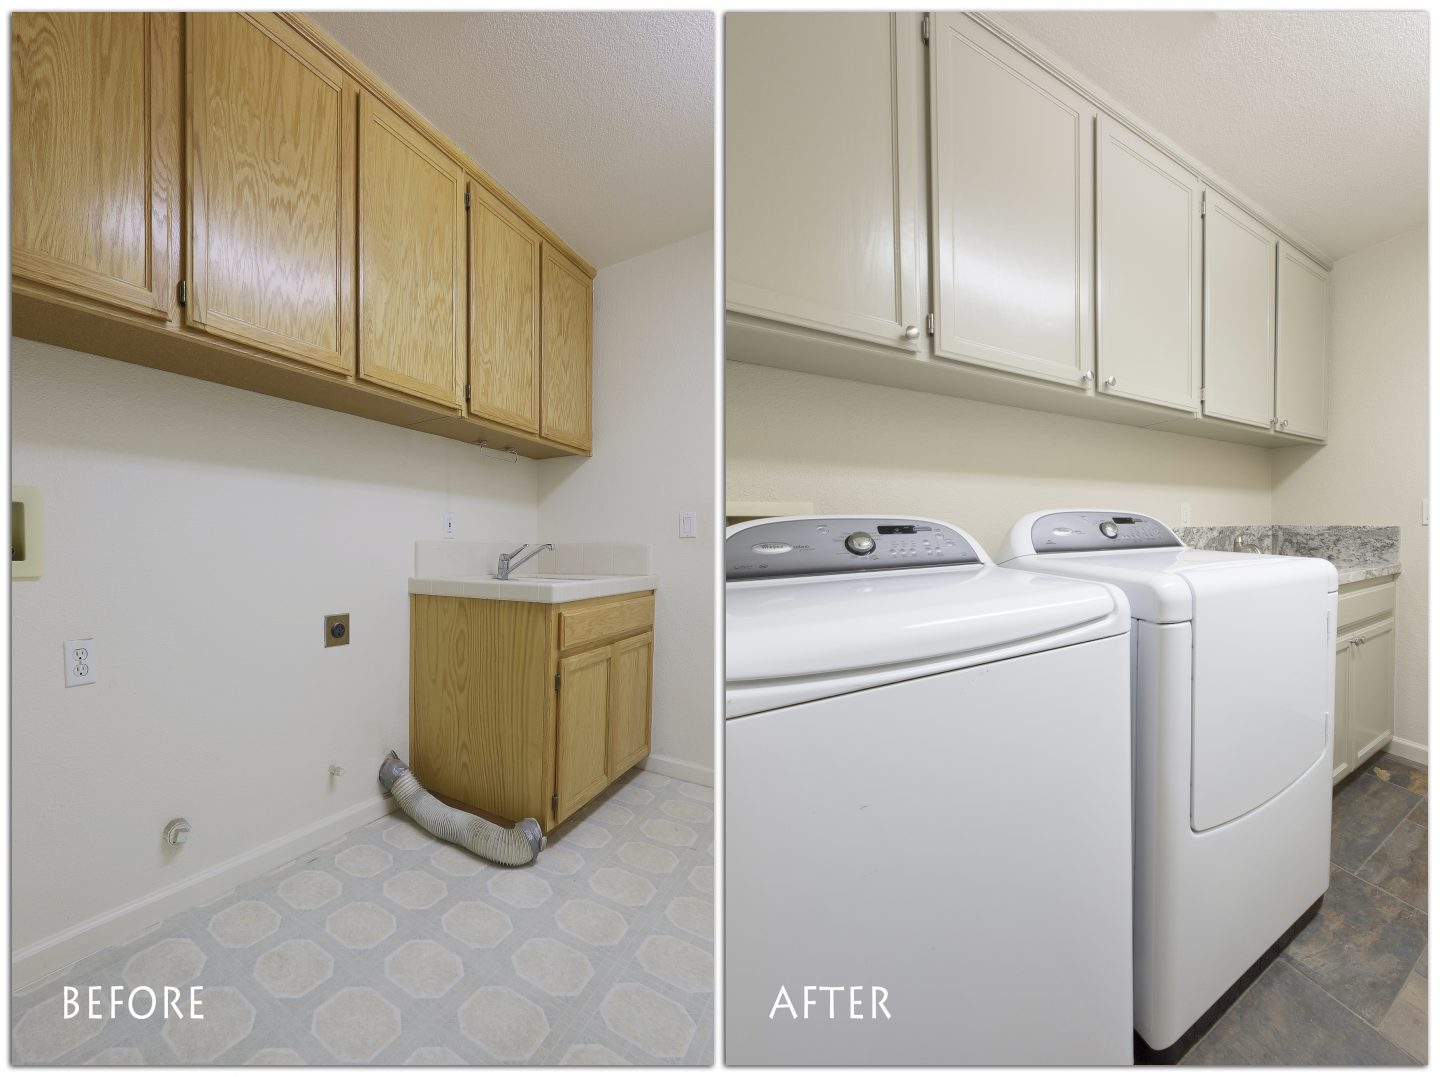 New laundry room cabinets.